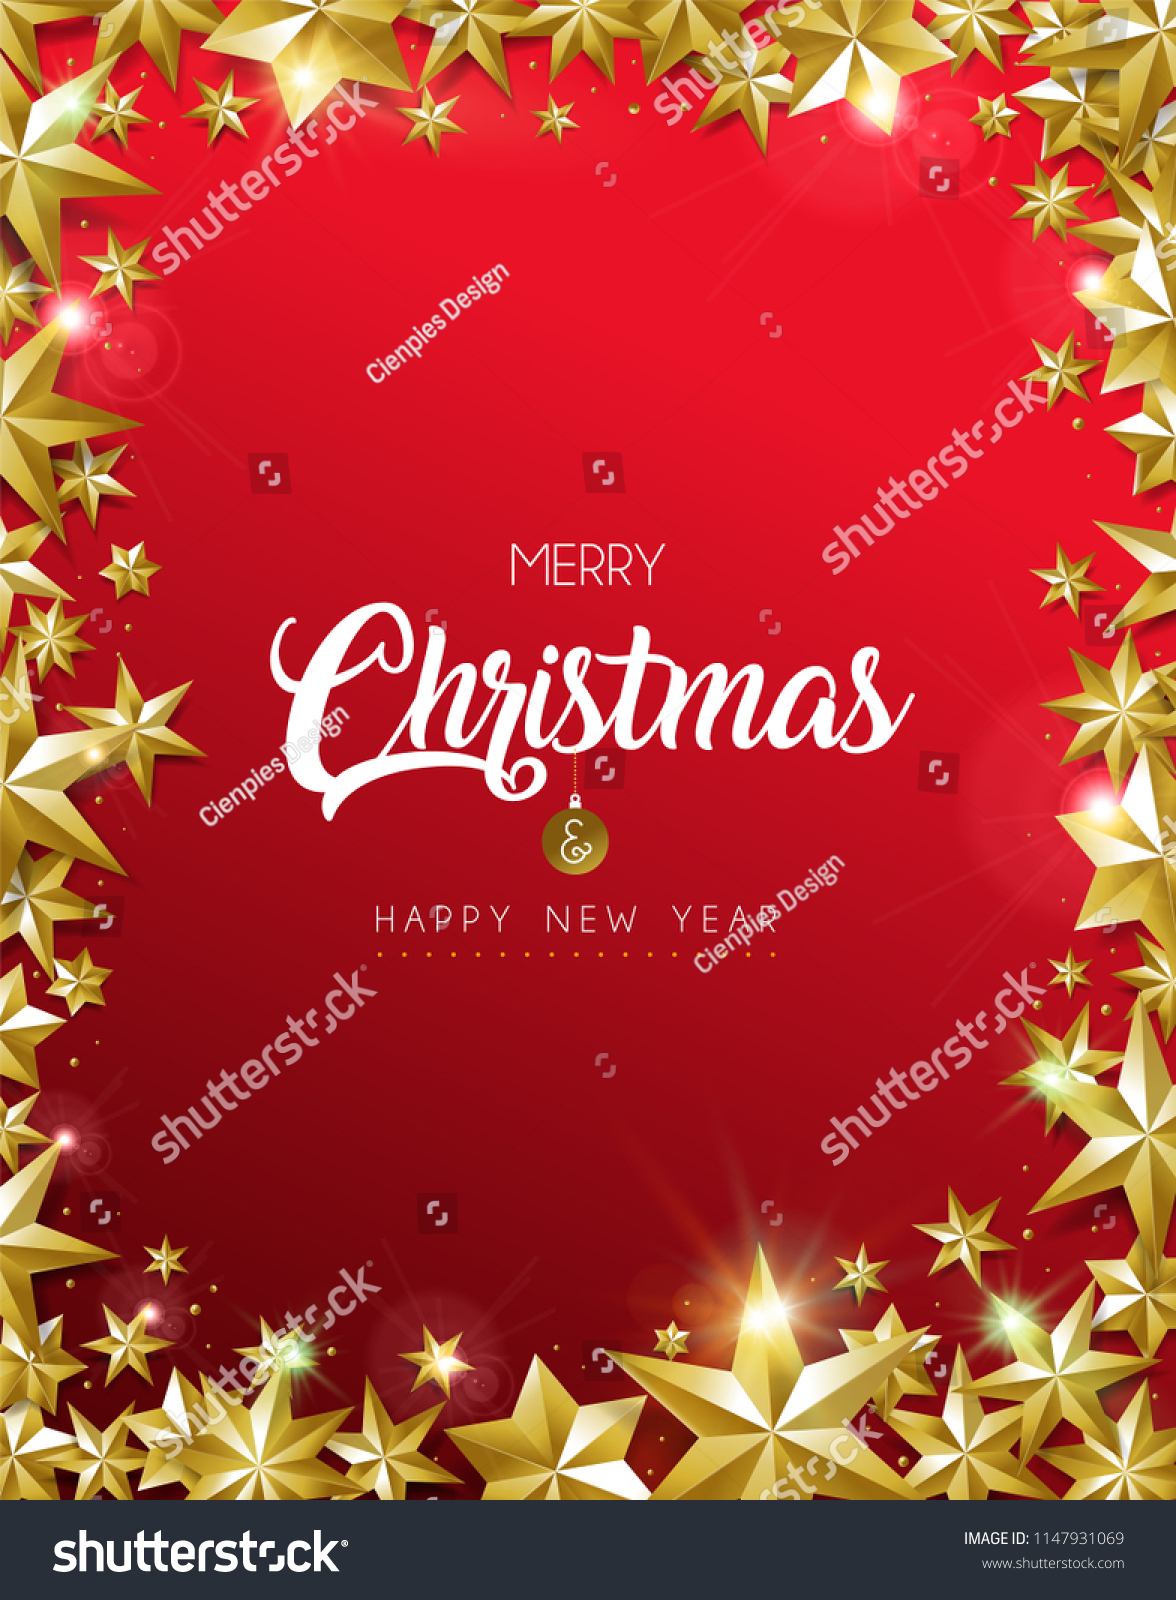 Merry Christmas New Year Greeting Card Stock Vector Royalty Free